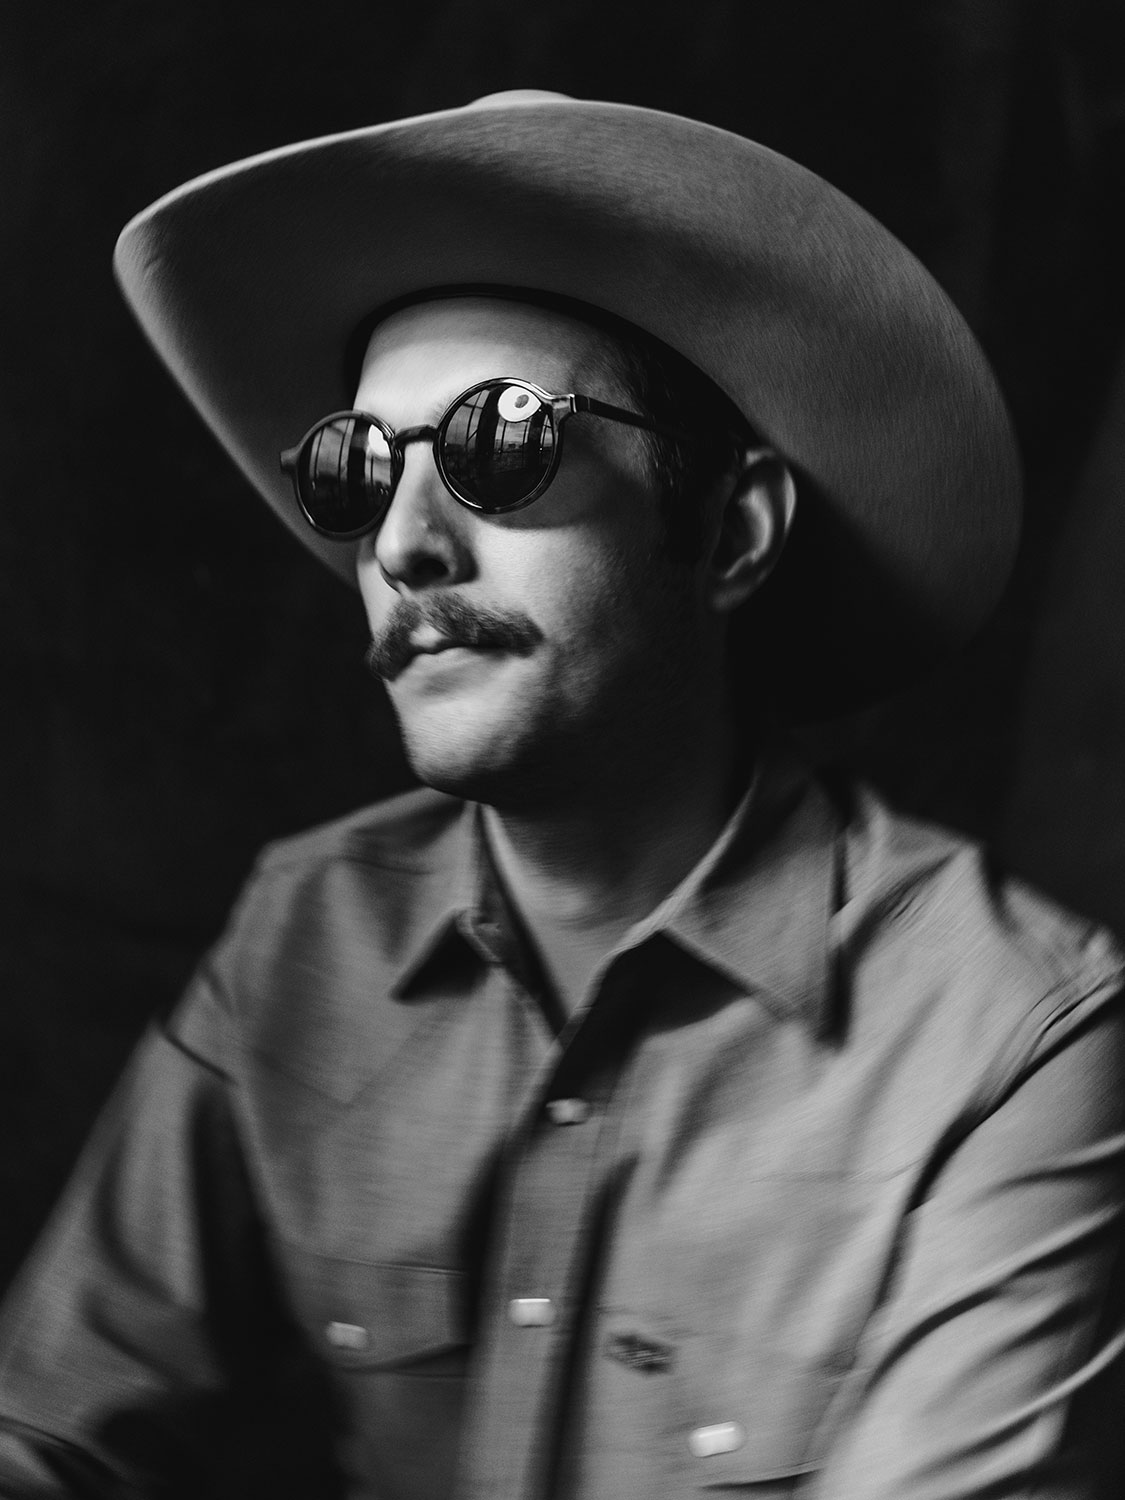 Musician Garrett T Capps photographed in San Antonio, TX by Editorial Photographer Josh Huskin.